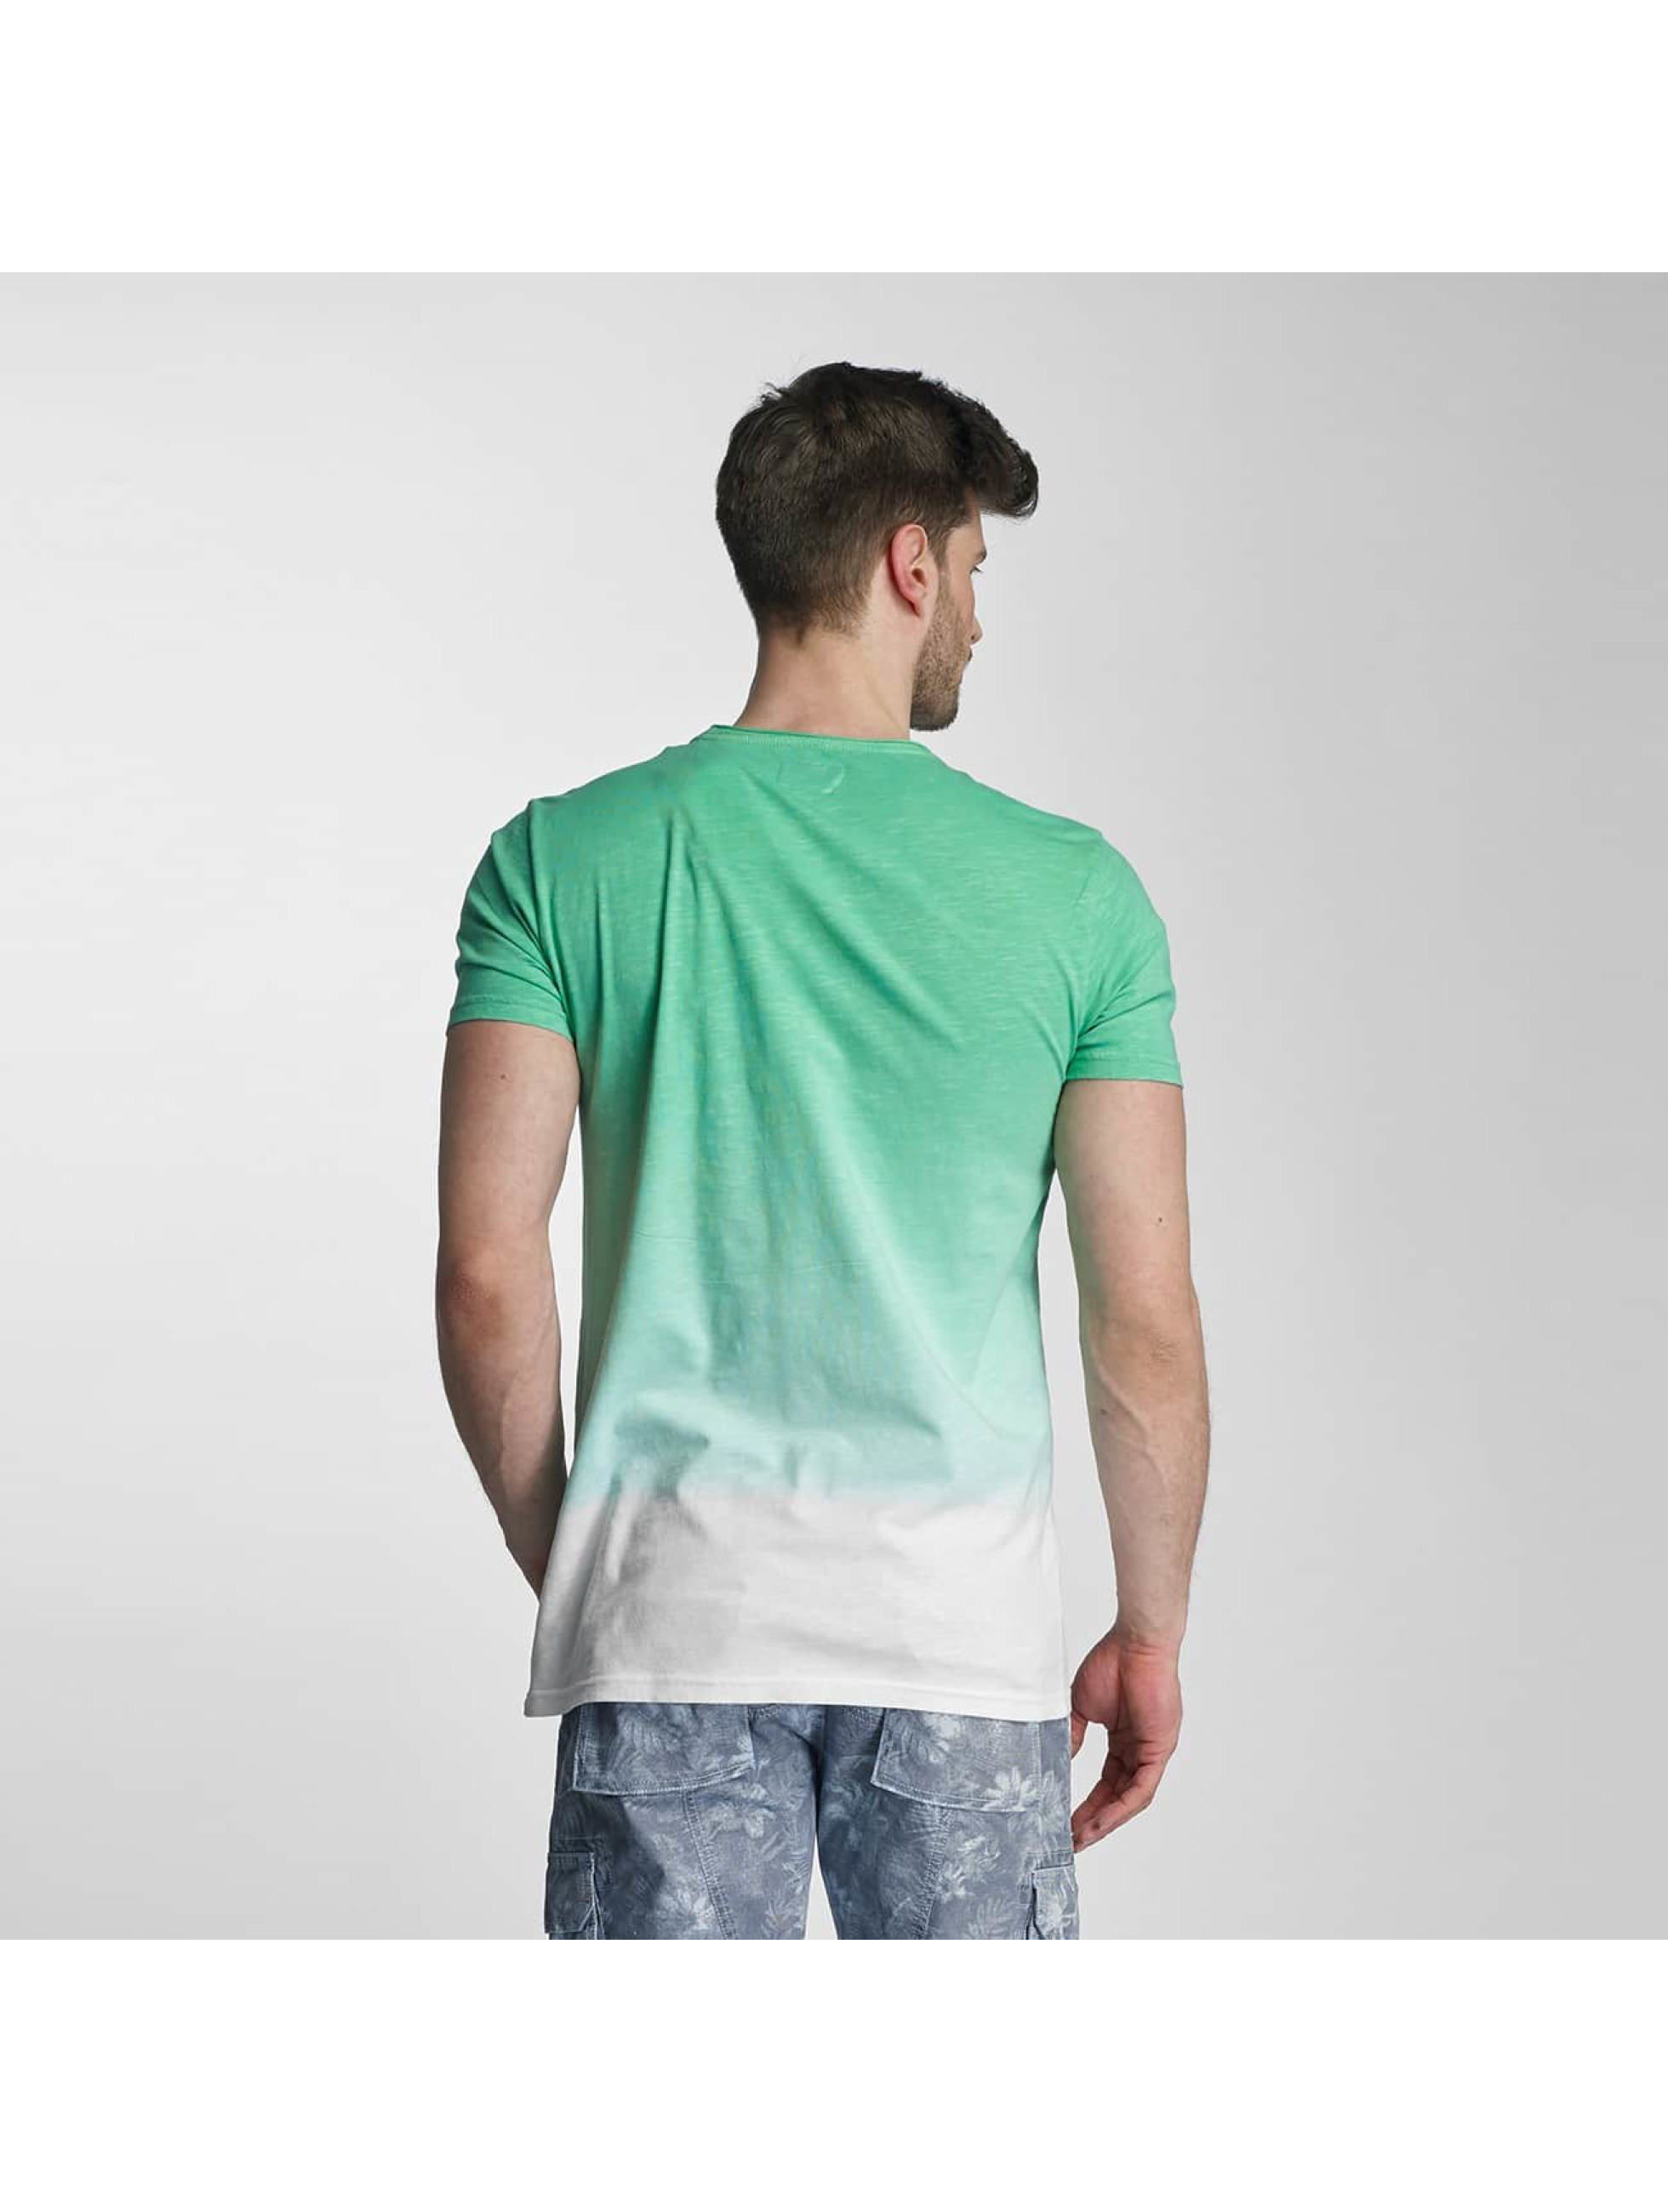 SHINE Original T-shirt Dip Dyed verde